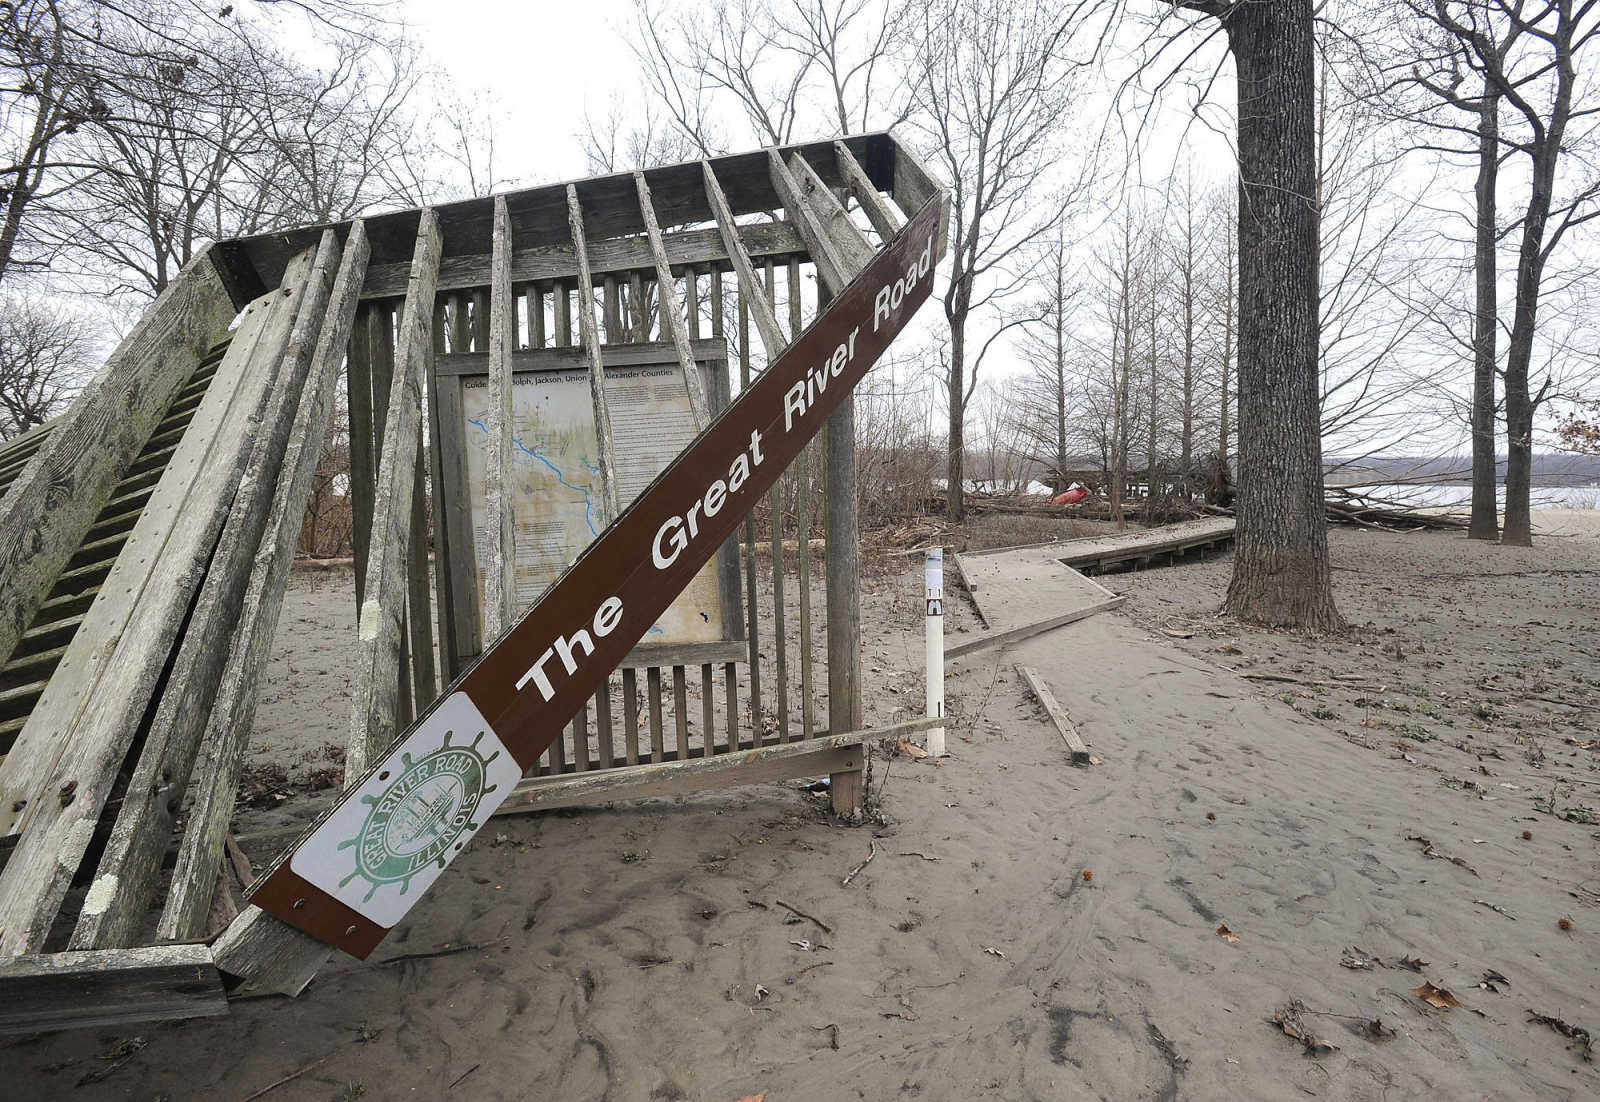 Illinois alexander county thebes -  Flooding Damaged The Historic Marker Next To The Boardwalk At Thebes Illinois As Seen Jan 16 2016 Along Highway 3 In Alexander County Fred Lynch